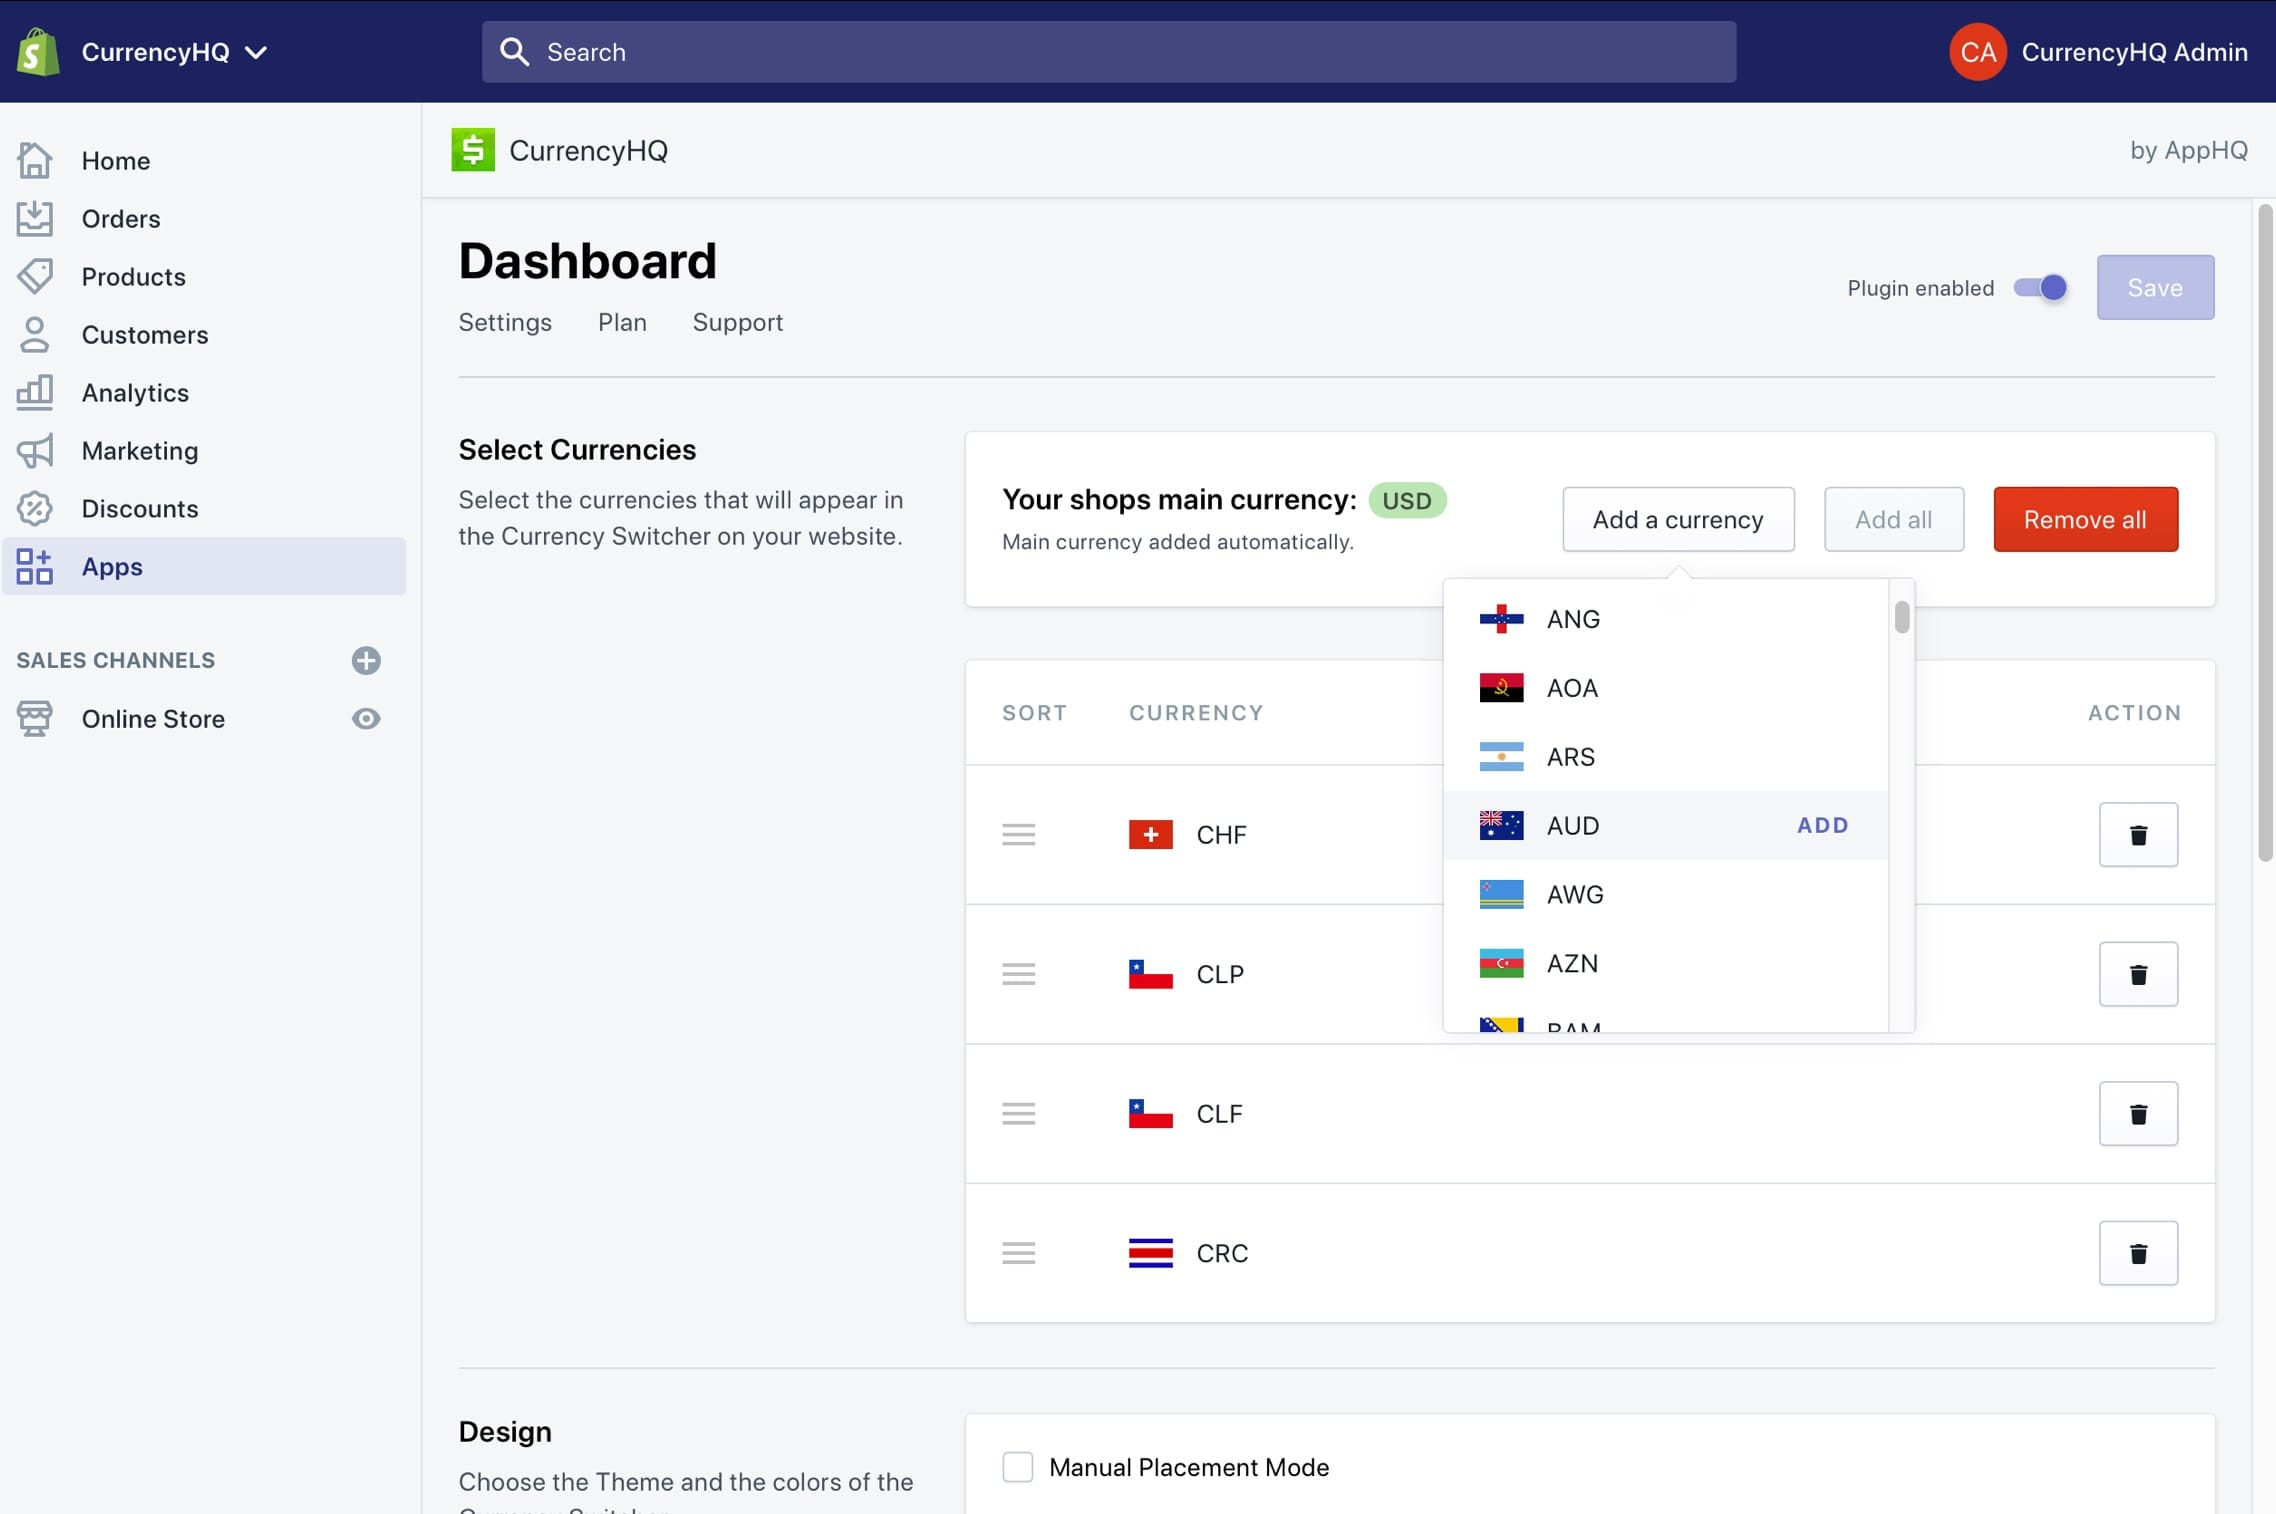 CurrencyHQ back-end dashboard